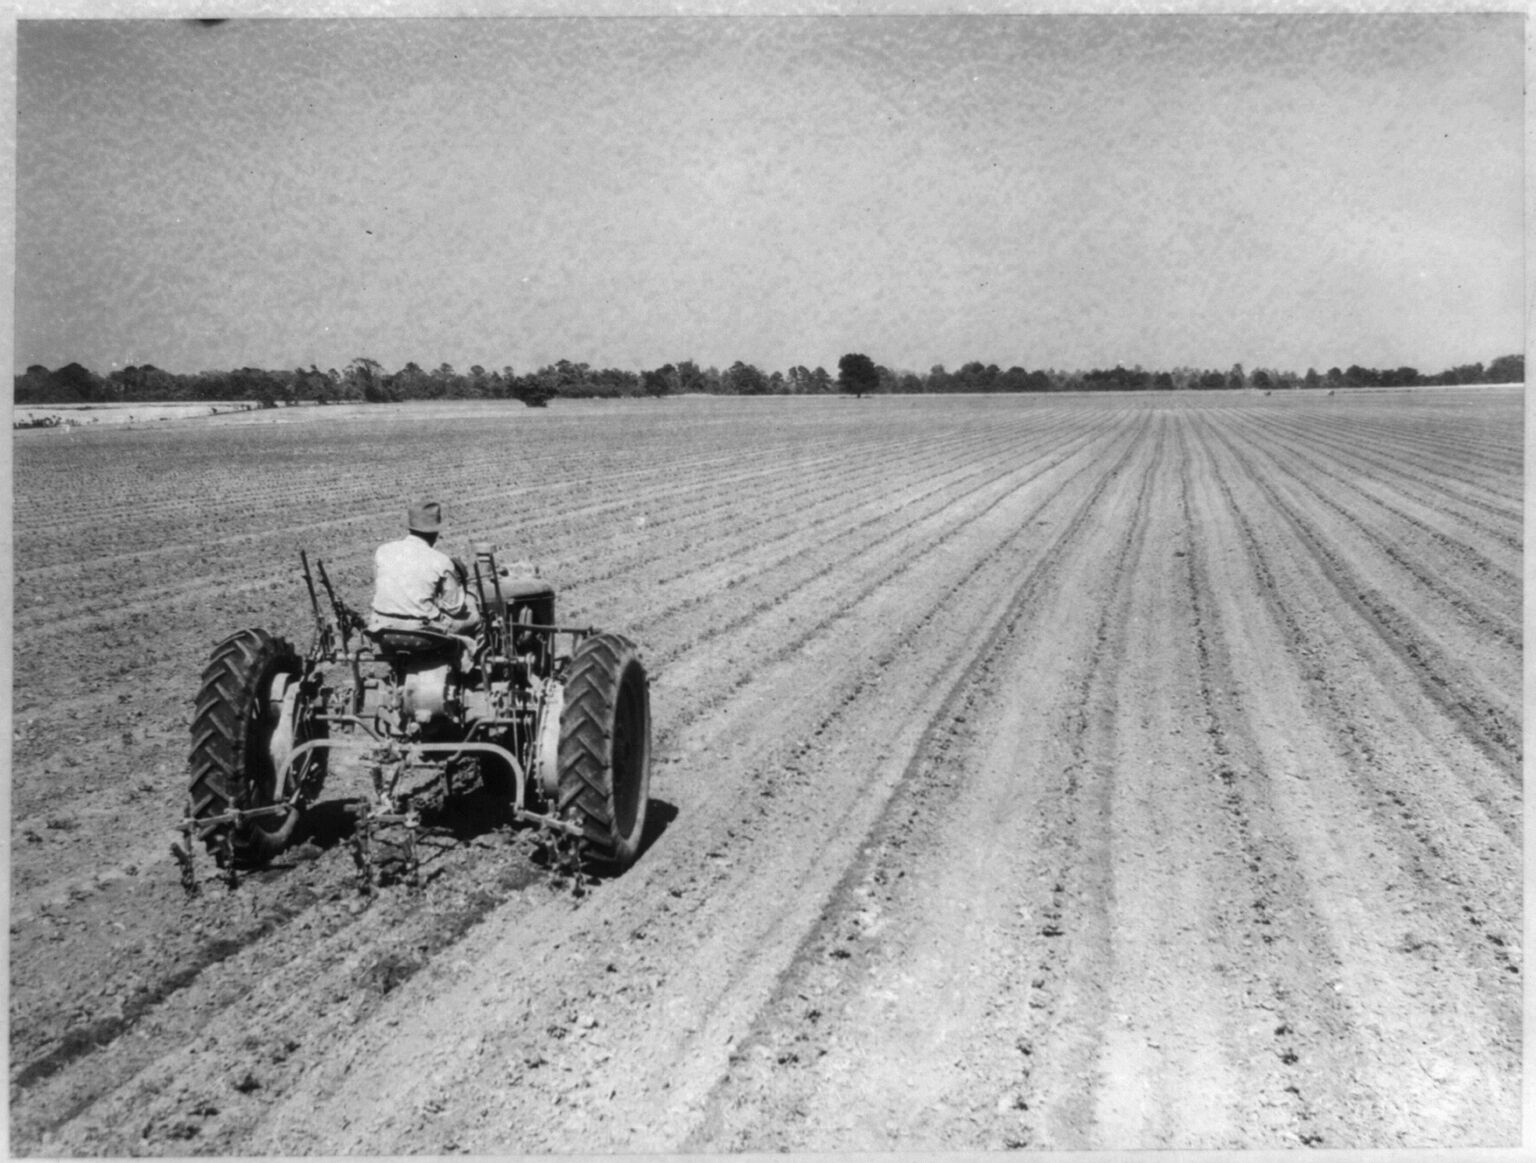 A black and white photograph of a tractor in a field.